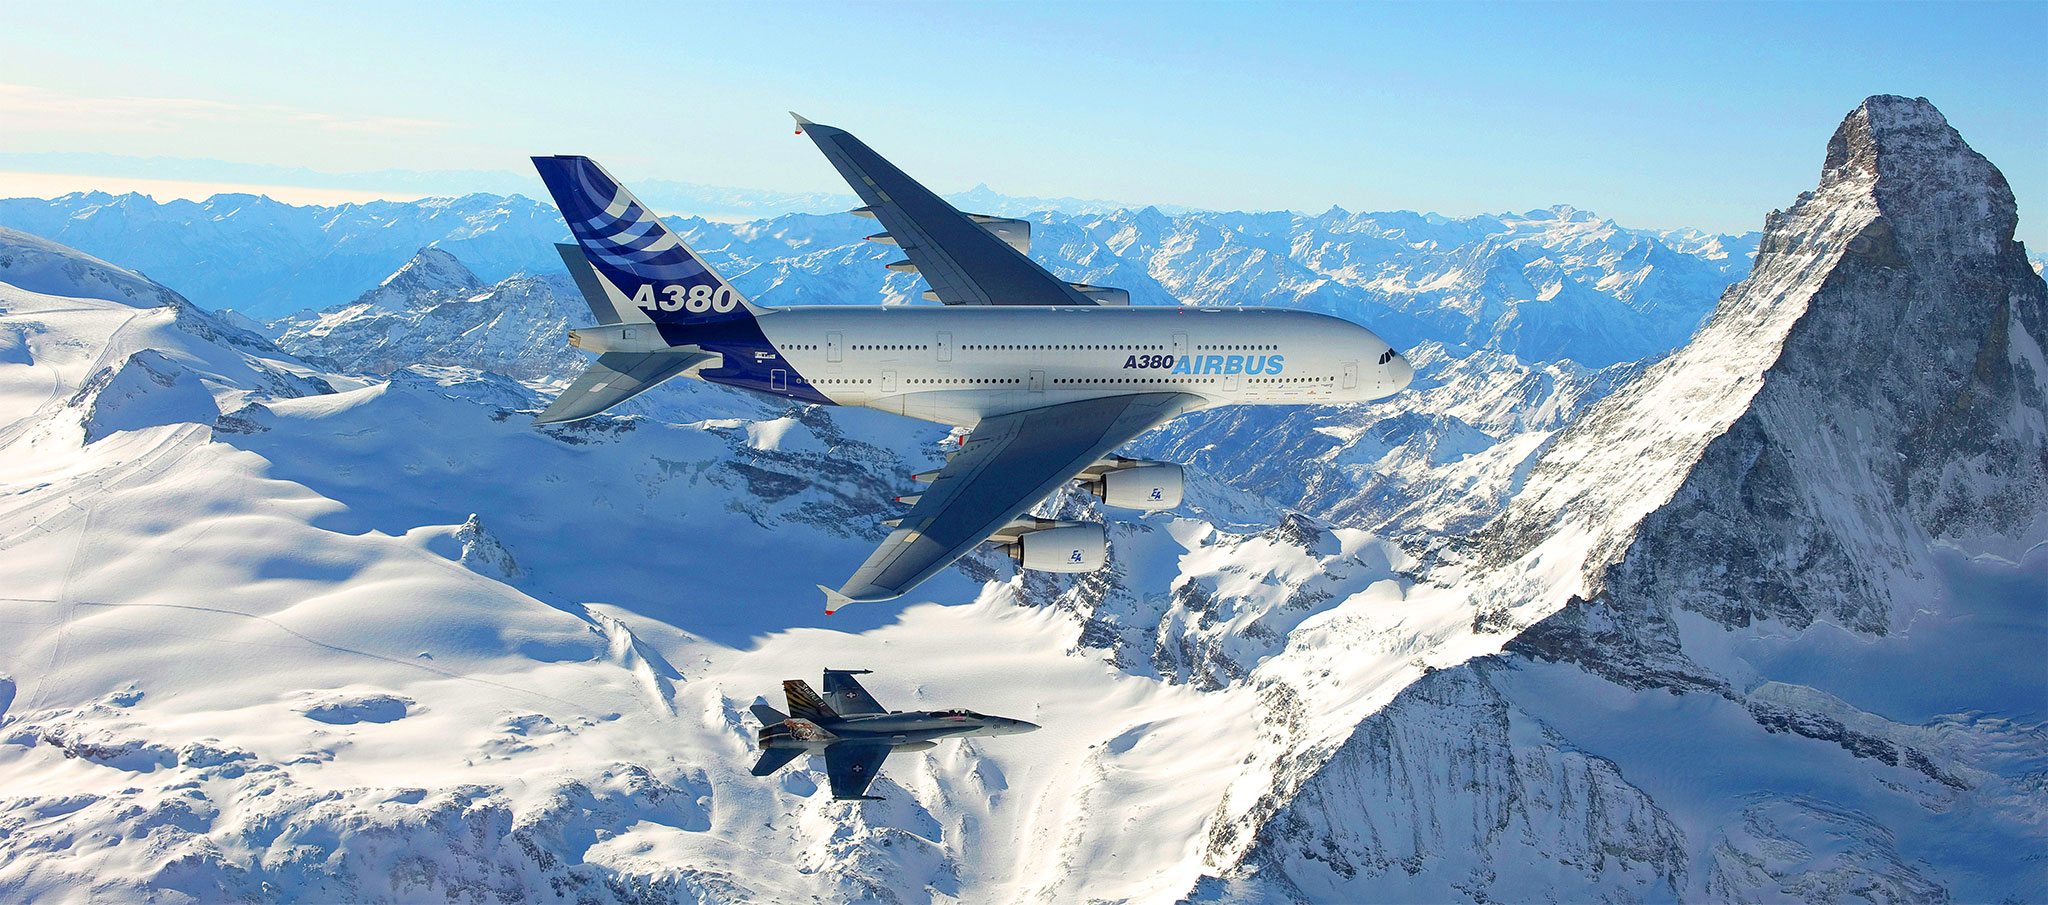 a380 in flight - Our Projects